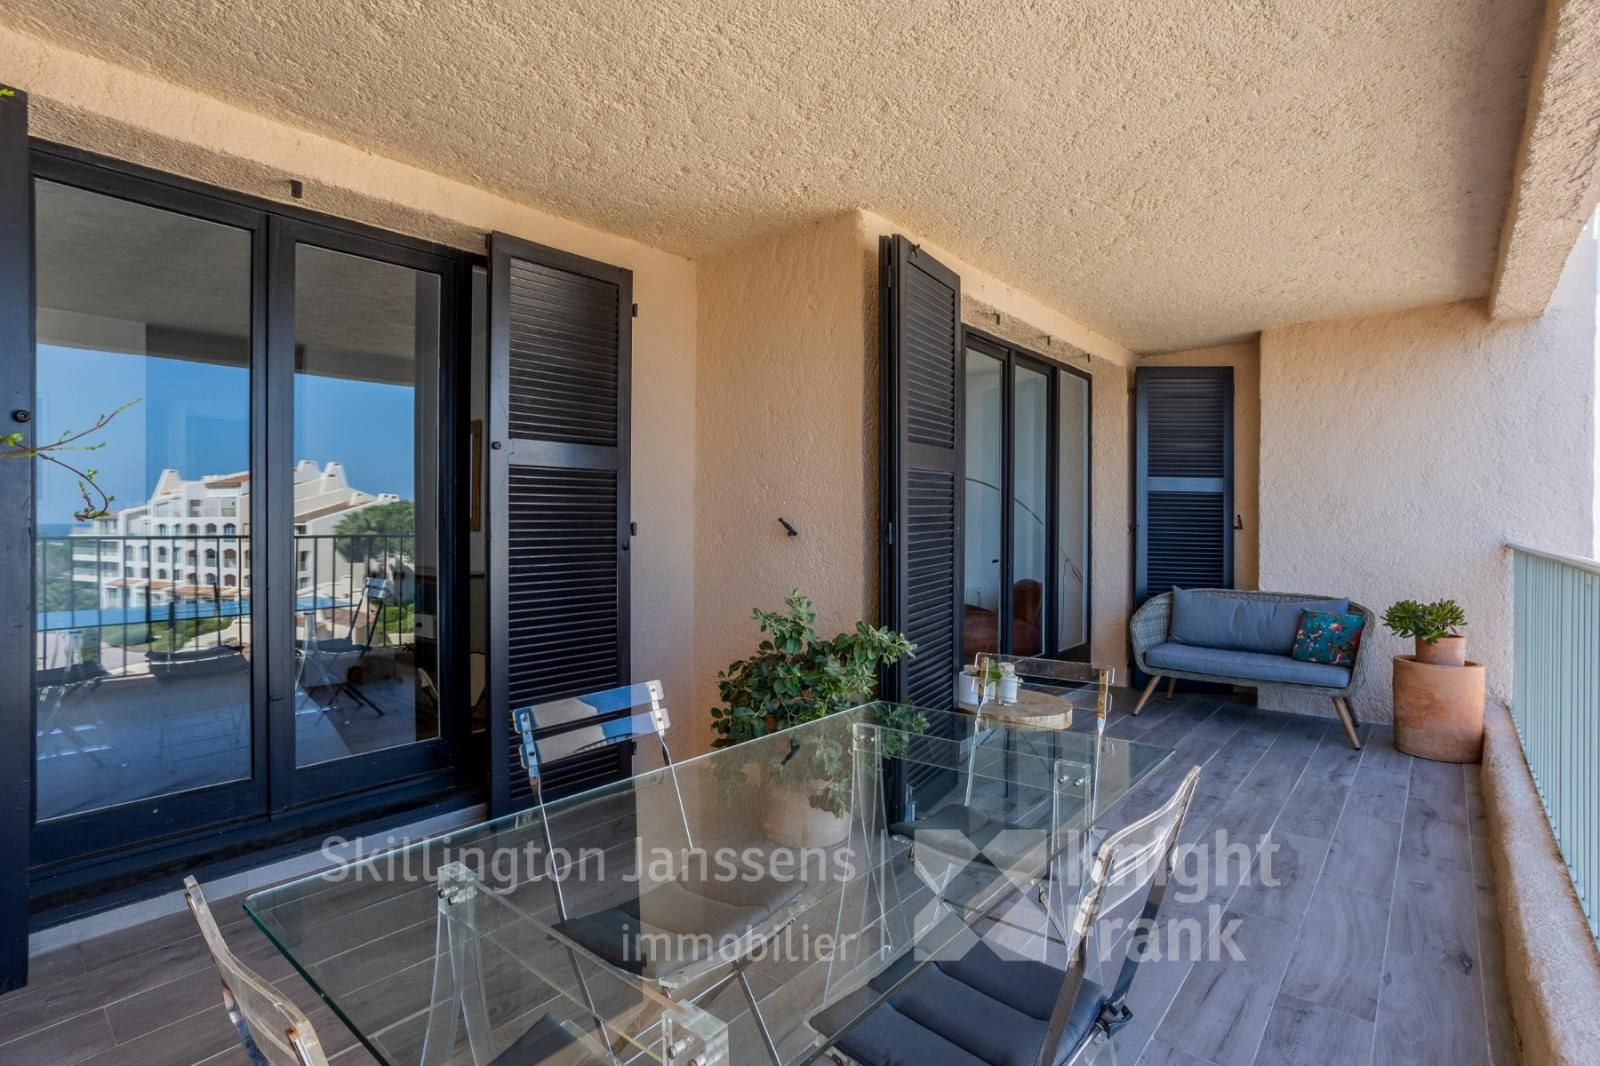 Superb Apartment For Sale In Les Marines De Cogolin Janssens Immobilier Provence Apartments For Sale Bright Living Room Small Buildings